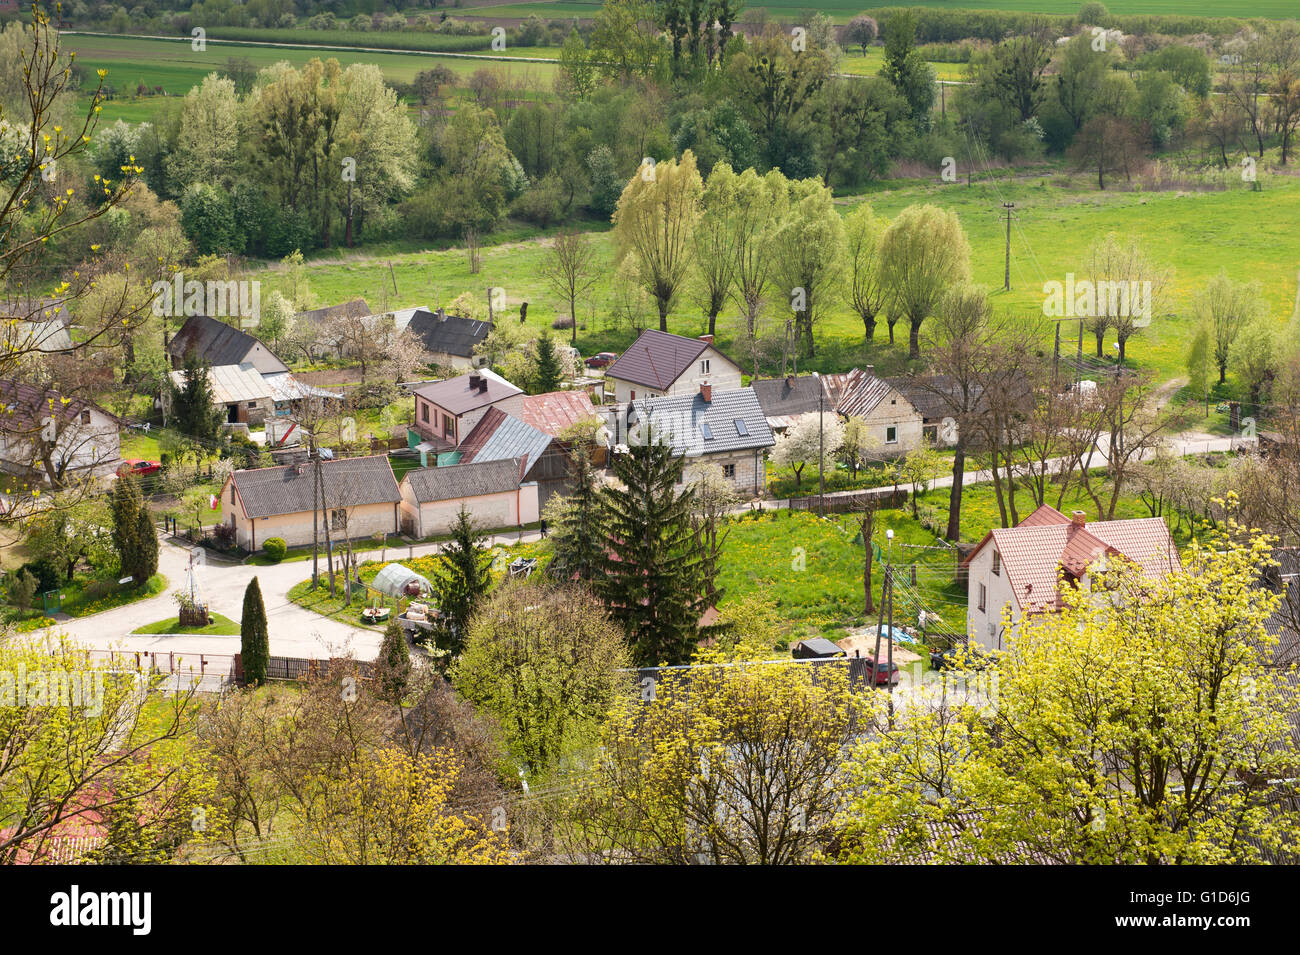 Village landscape view from Janowiec Castle hillside, aerial calming rural scenery and active leisure on May day - Stock Image